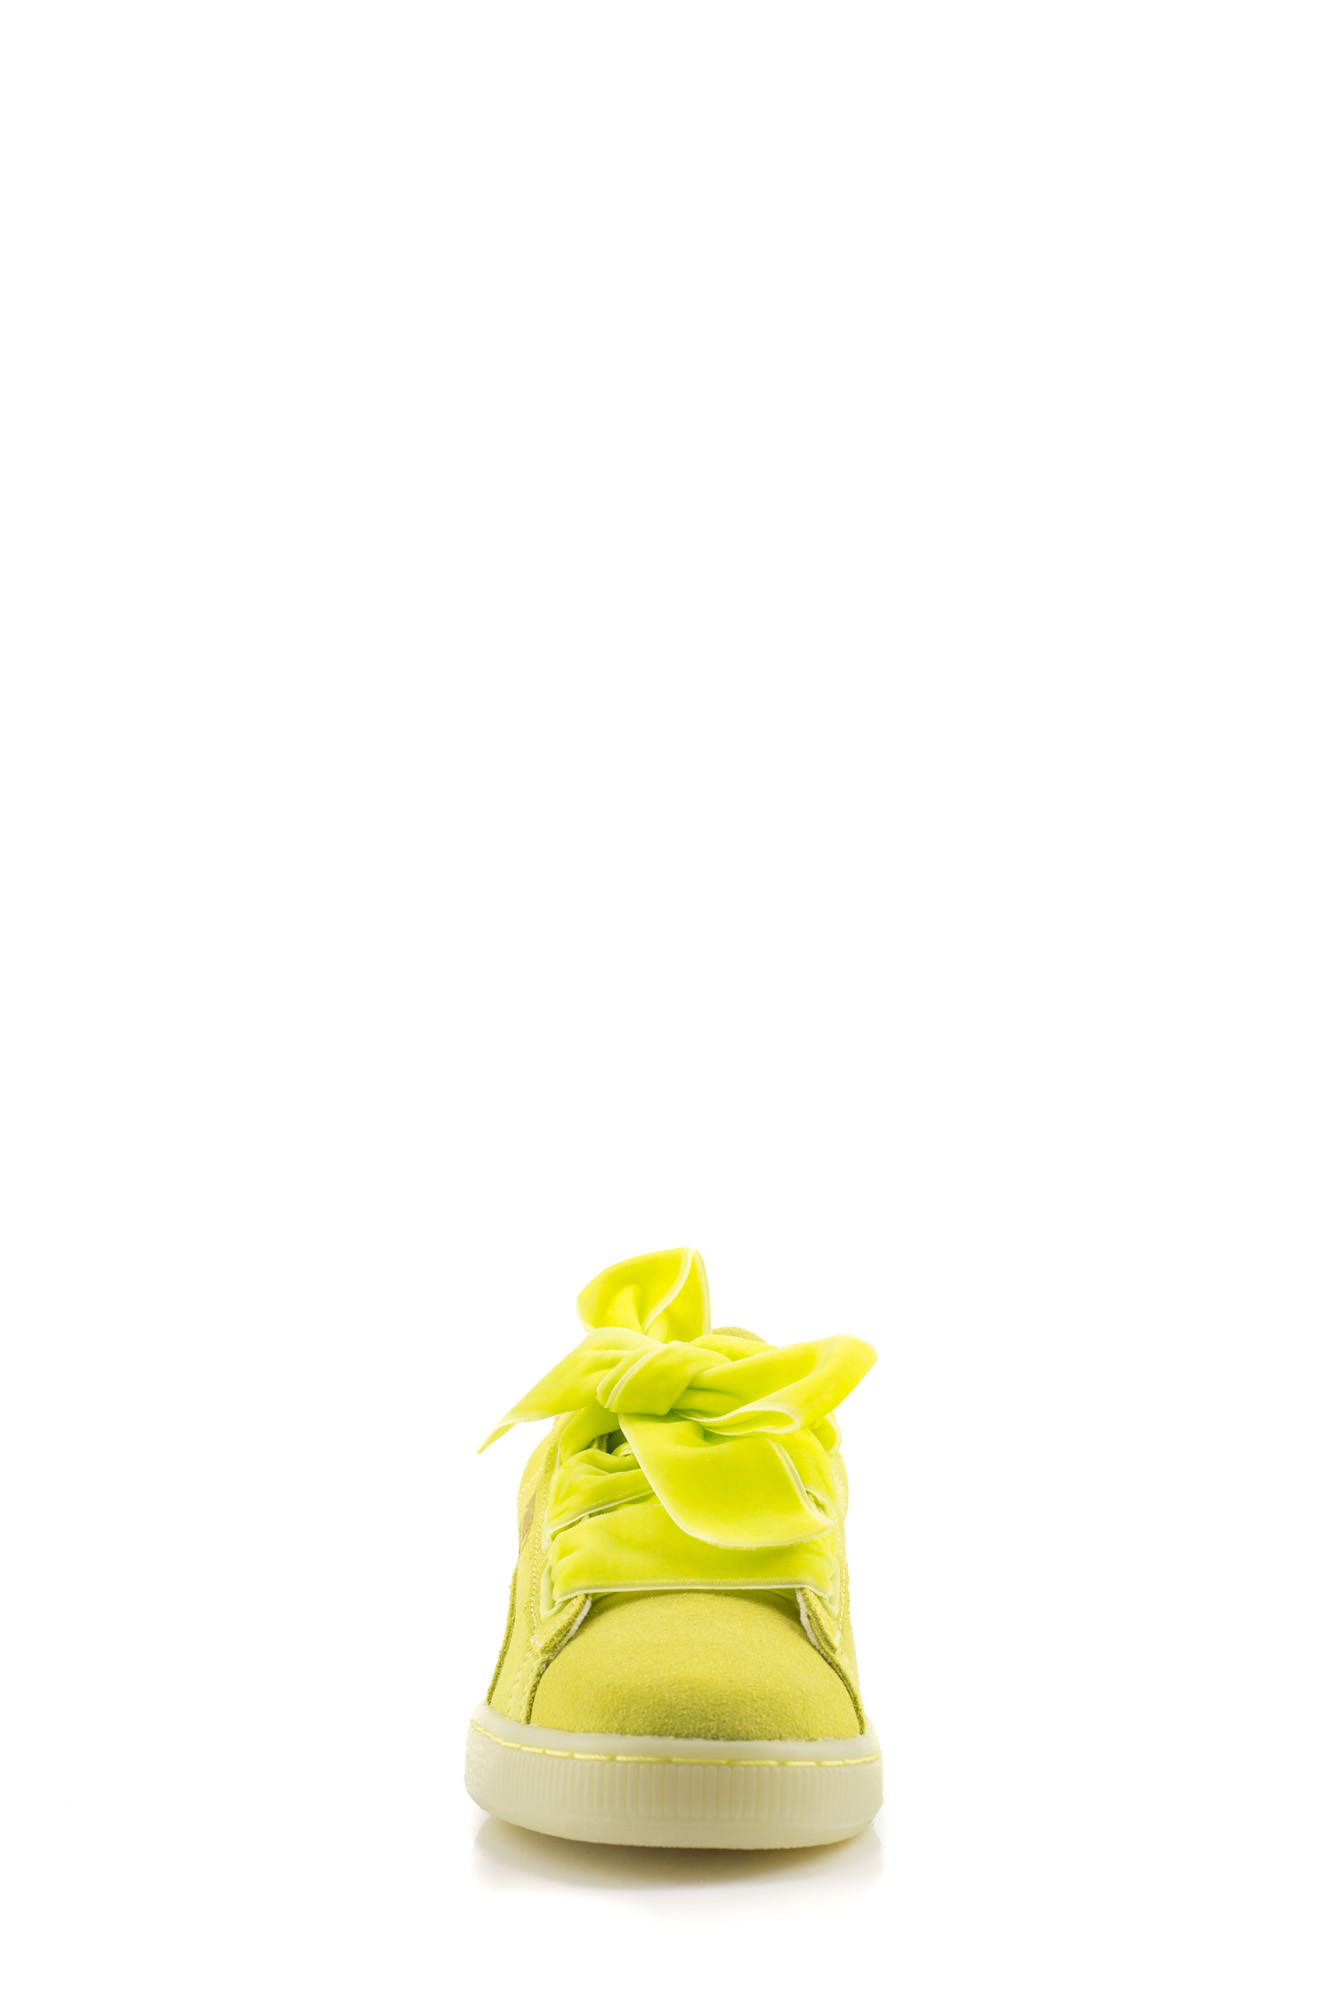 Puma - Suede Heart Reset Yellow Gialle